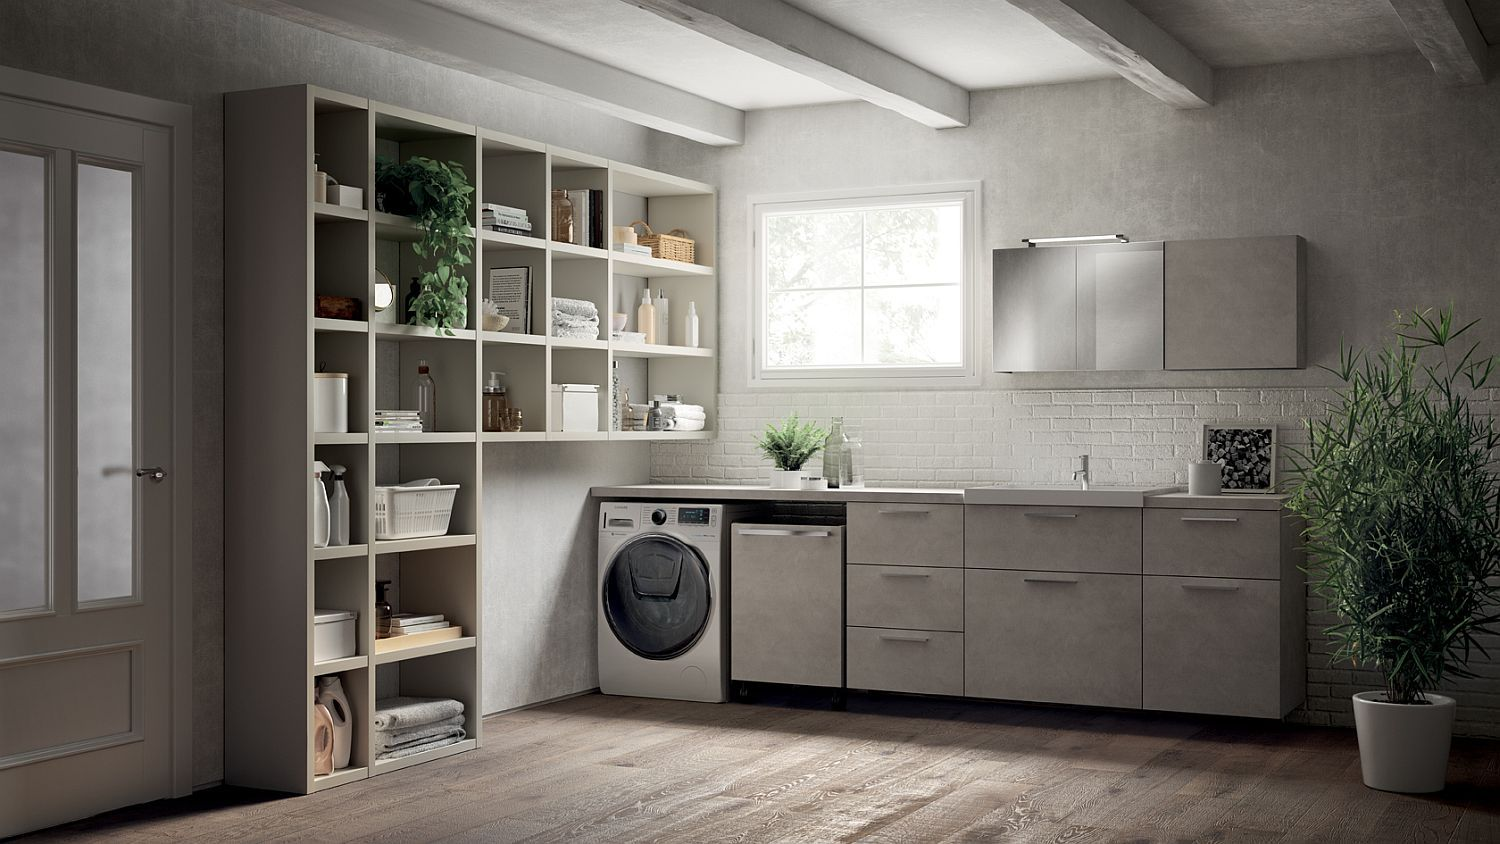 Fluida wall system combined with refined bathroom setting and smart ...